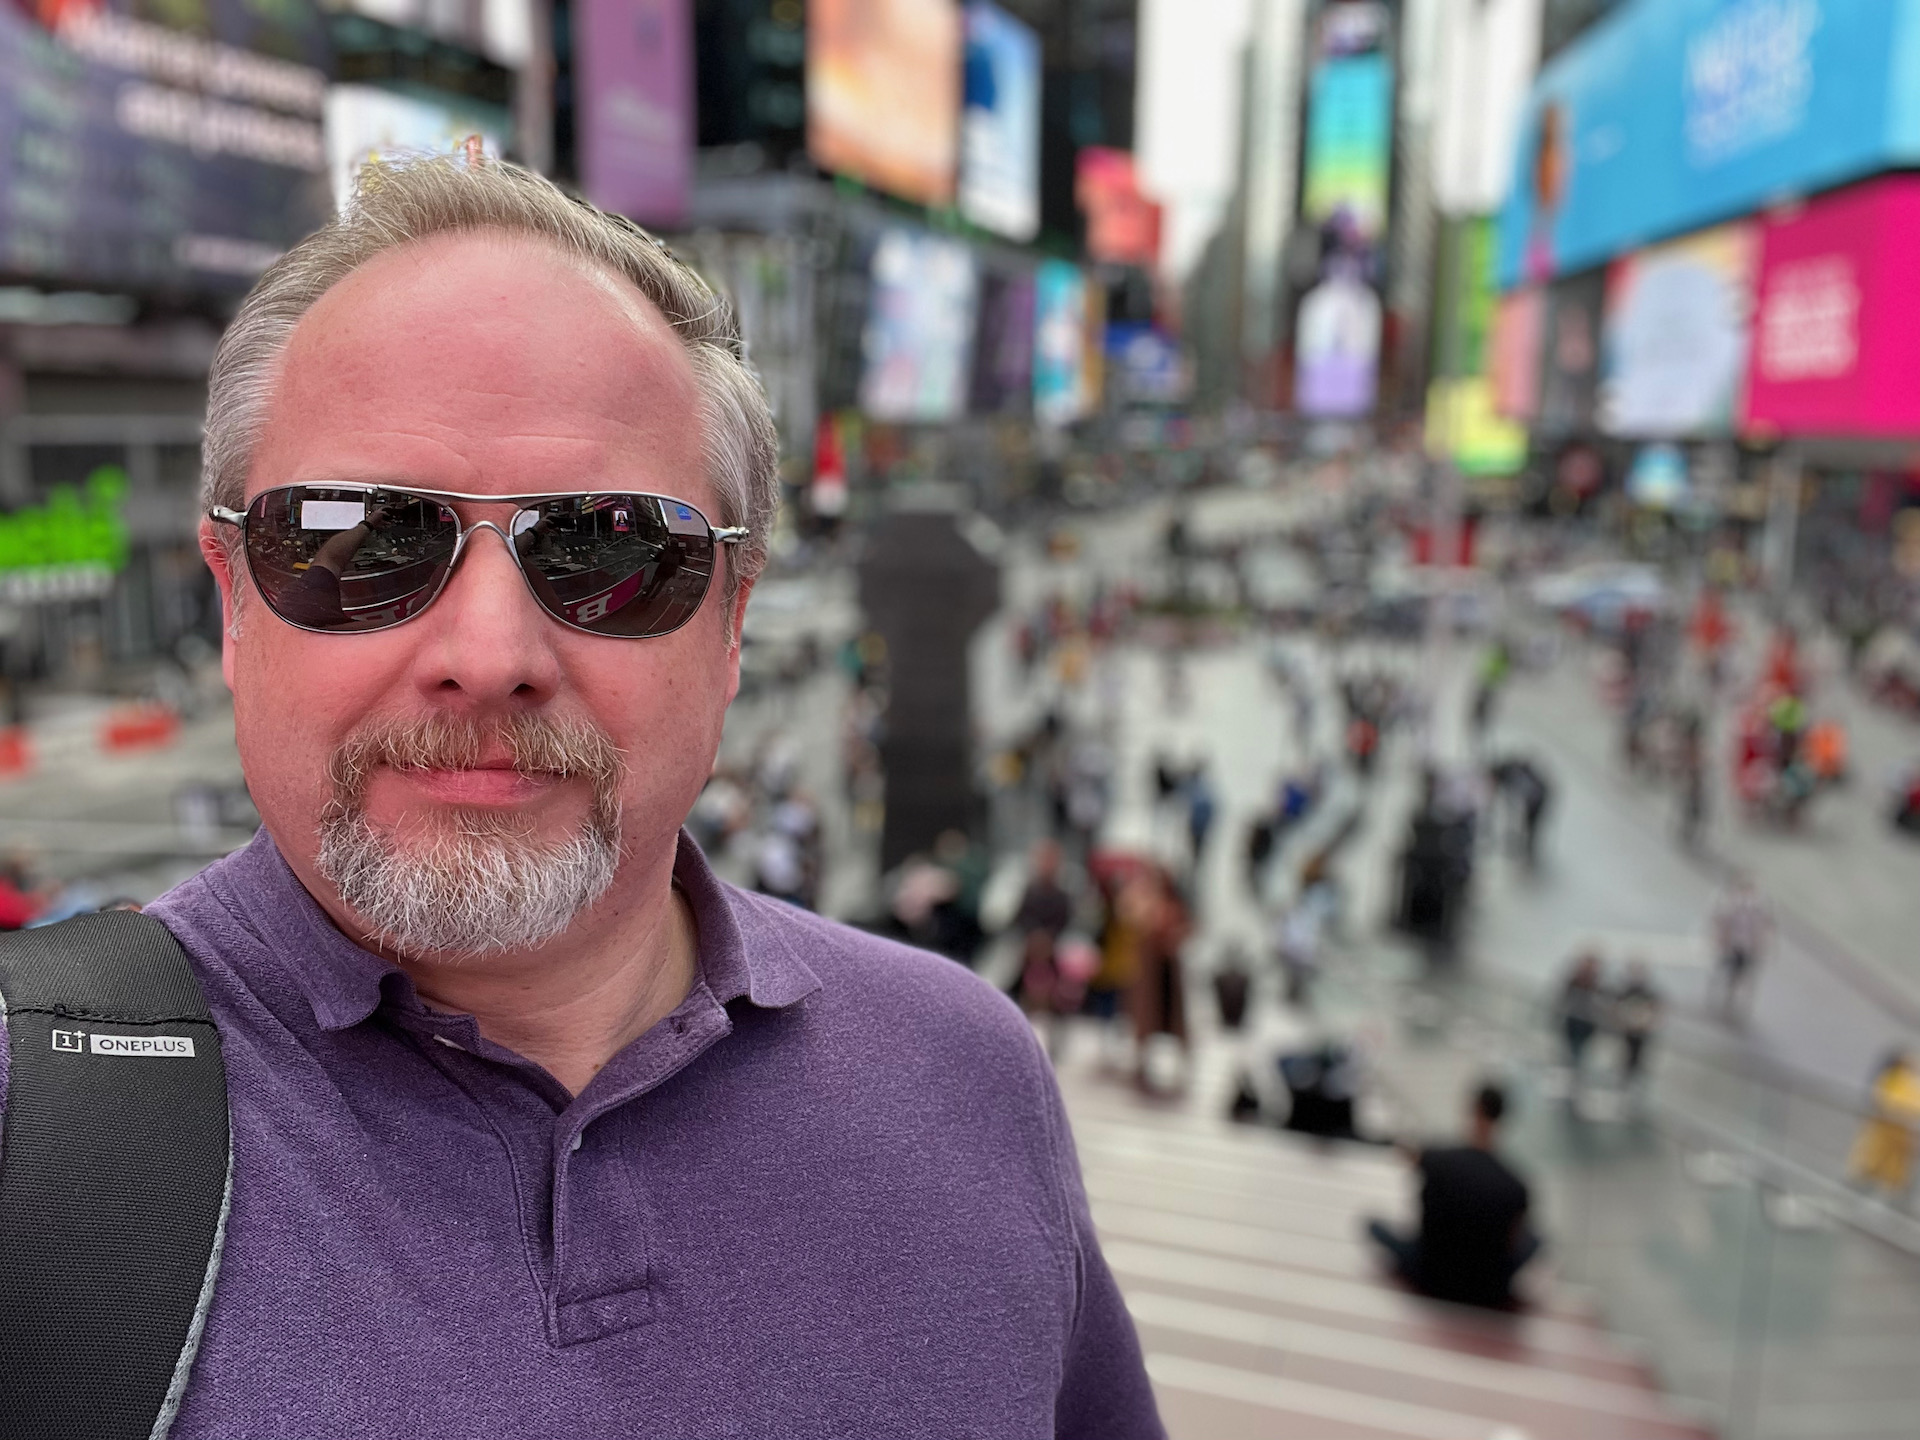 Apple iPhone 13 photo sample Times Square portrait of a man with light colored hair and beard wearing a purple top and black shades